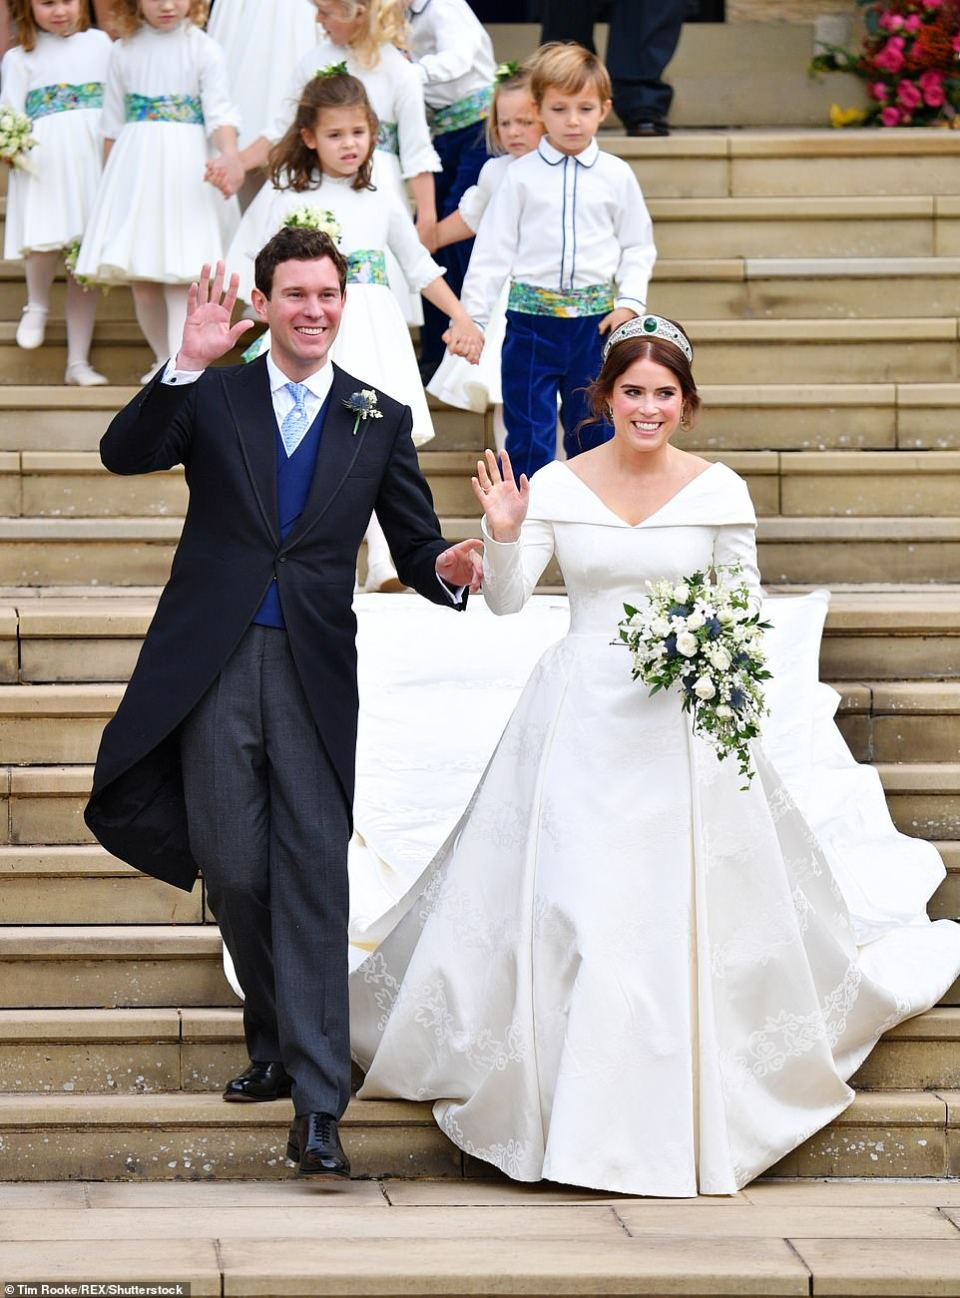 Theodora Williams and Louis de Givenchy held hands as they led the bridal party out of St George's Chapel behind Eugenie and Jack this afternoon